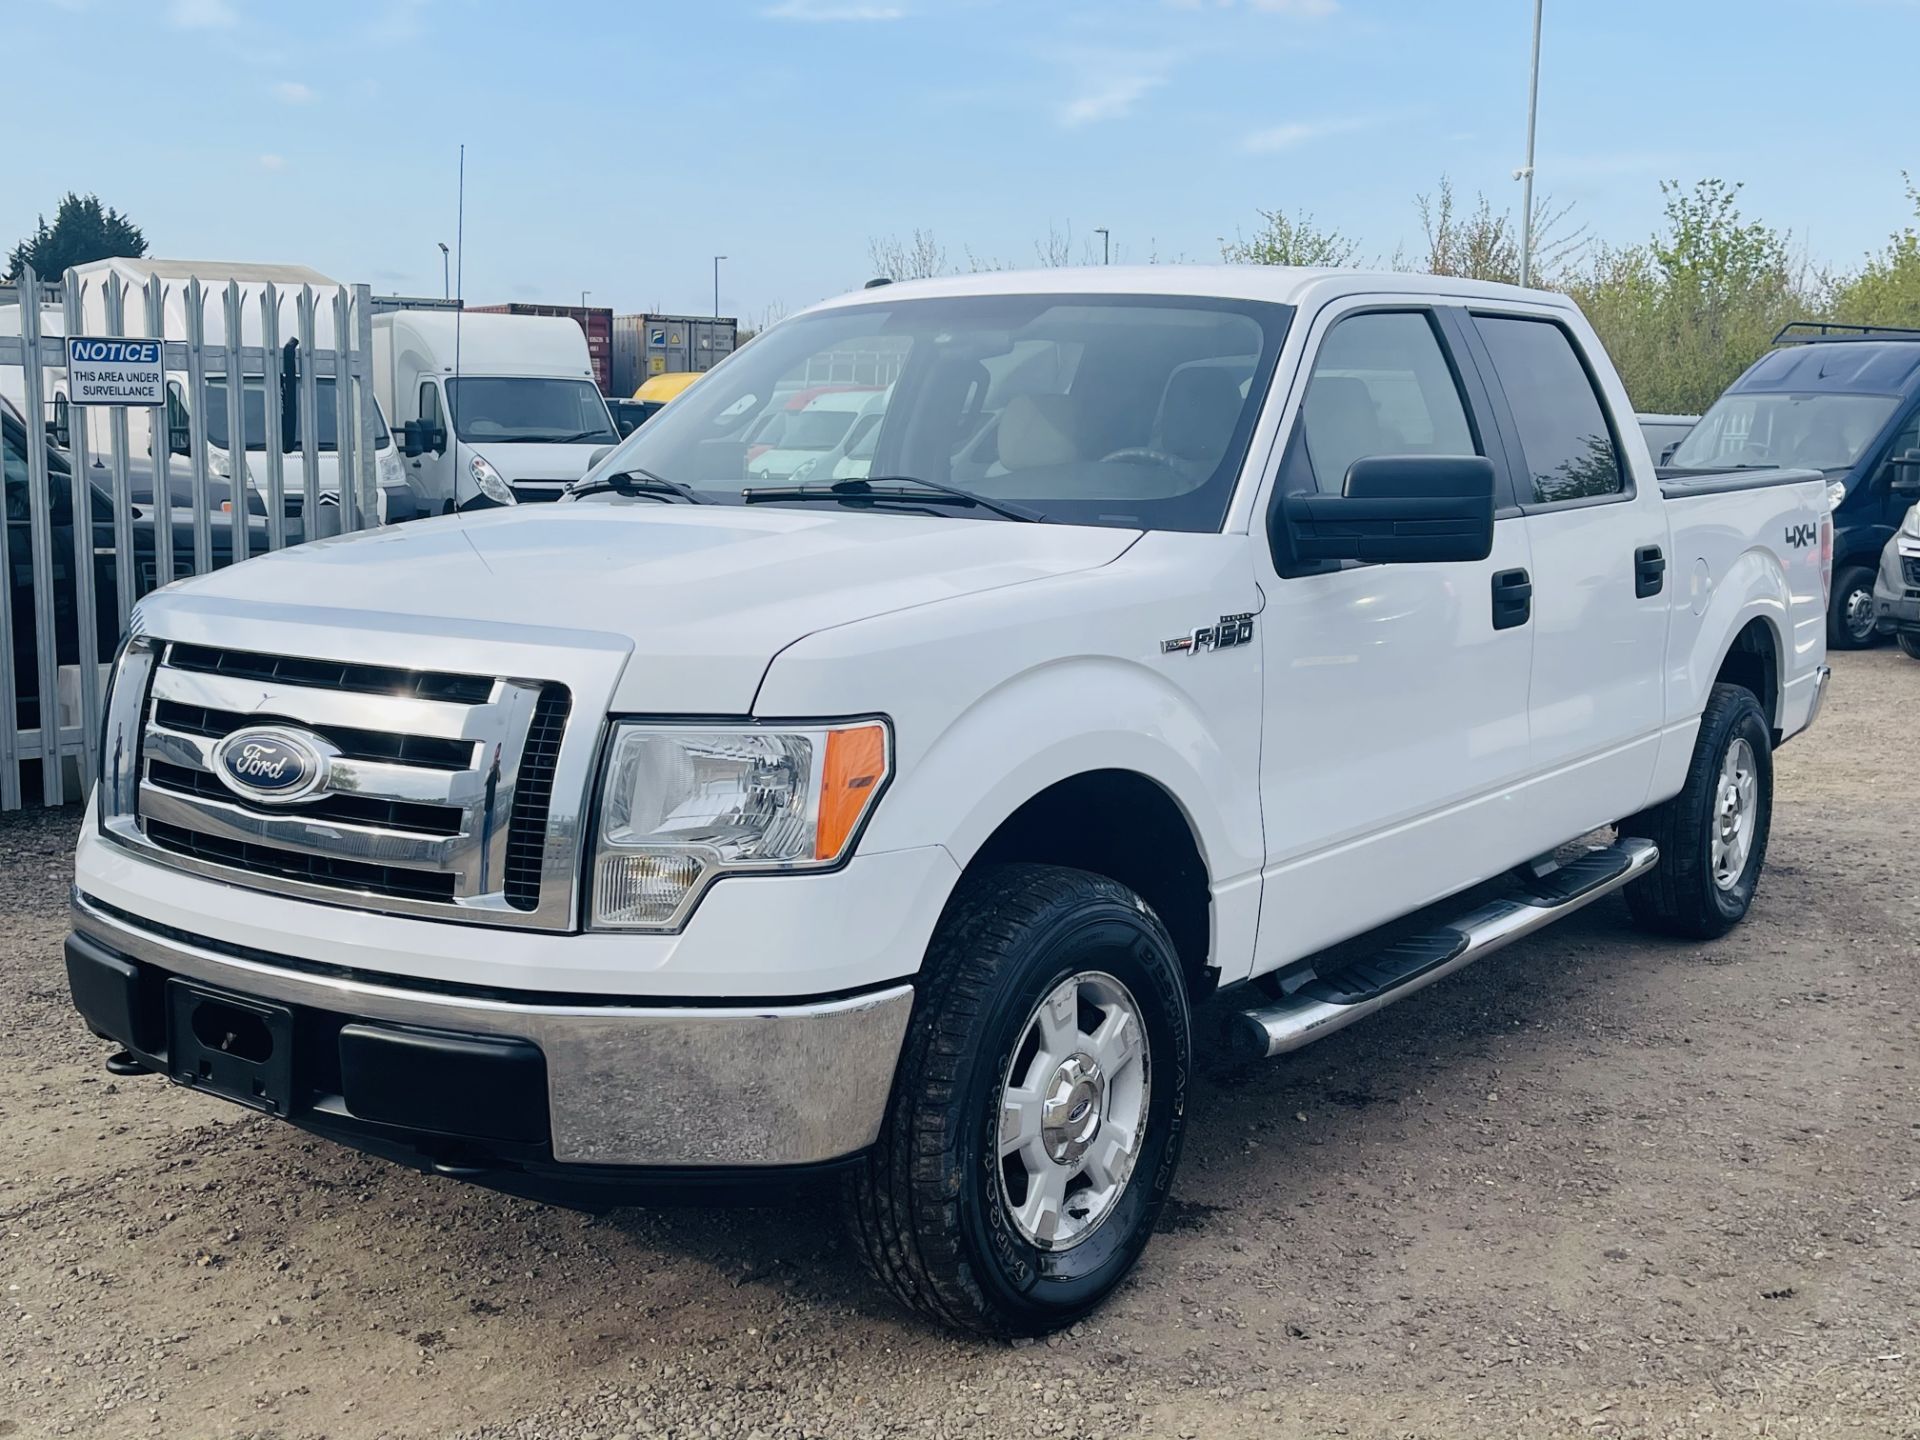 Ford F-150 XLT 4.6L V8 Super-crew 4WD 2010 ' 2010 Year' 6 Seats - Air con - NO RESERVE - Image 4 of 24